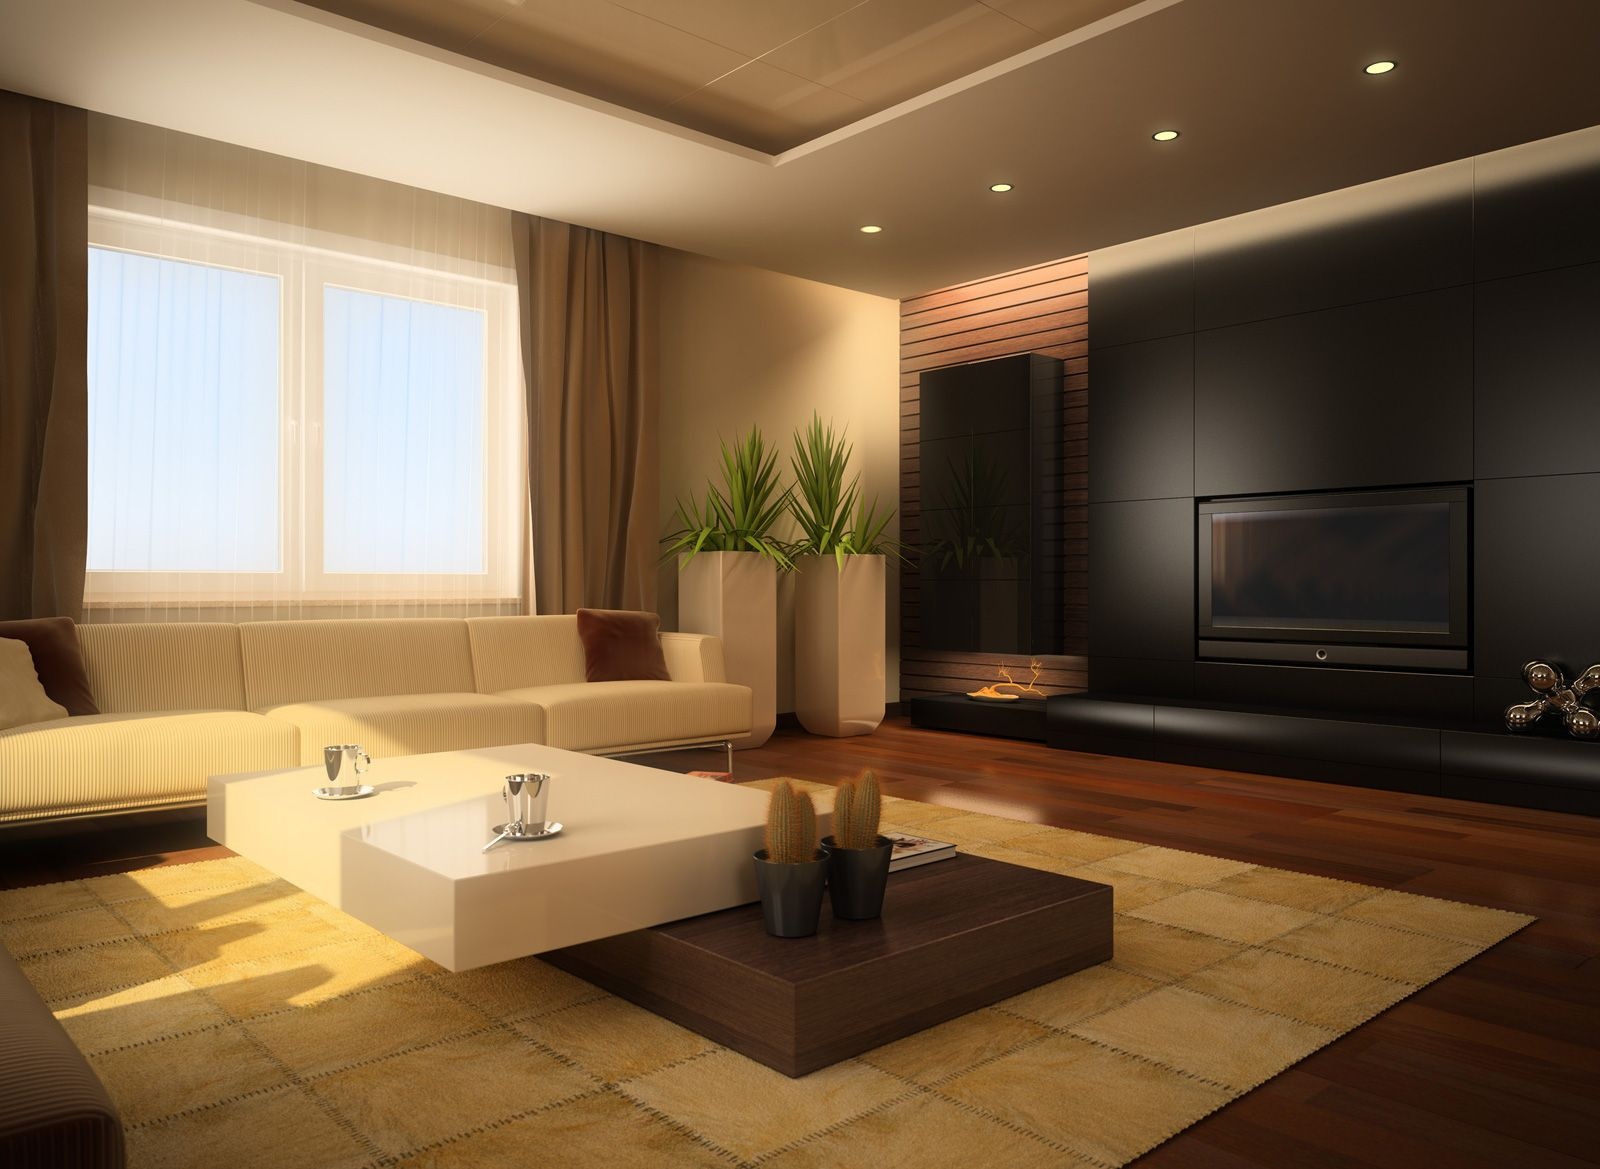 Modern minimalist interior designs for living rooms for Interior design minimalist living room